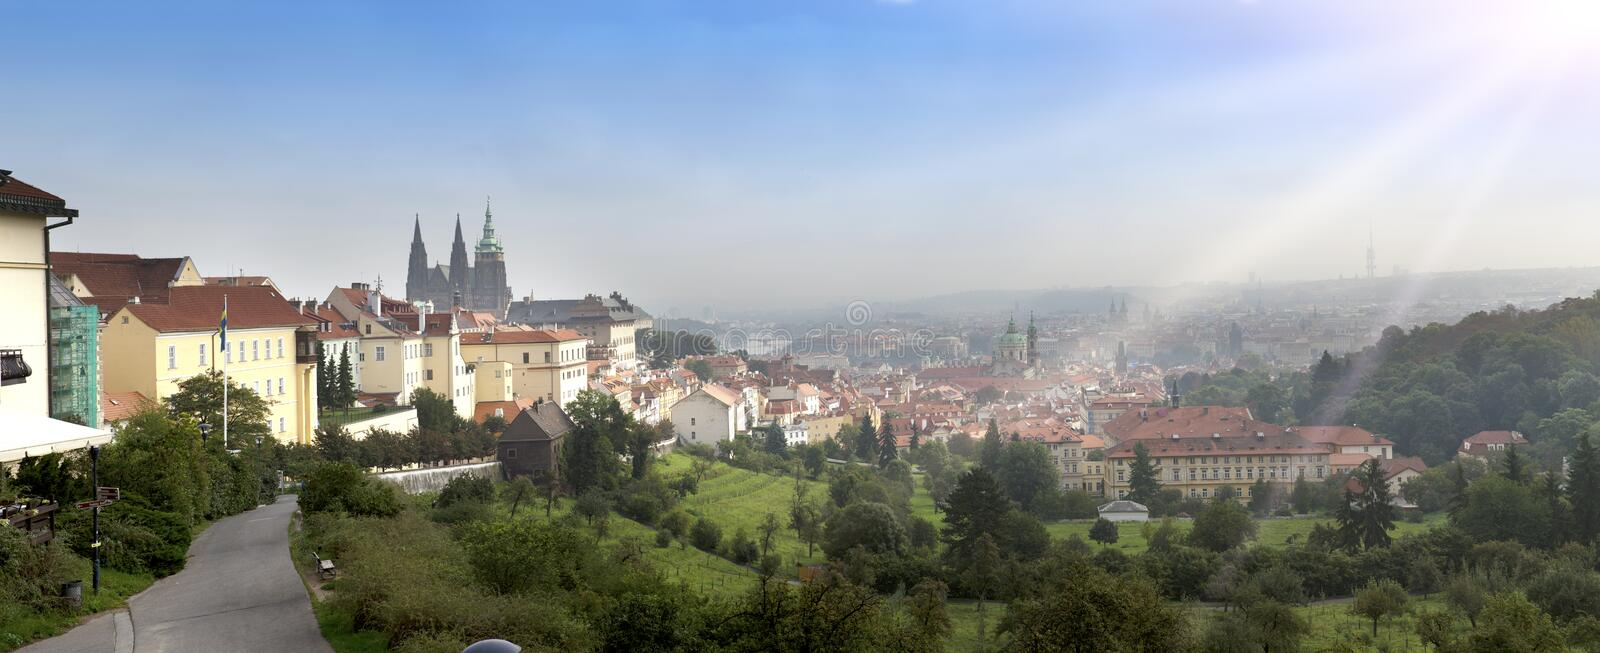 Prague, aerial view of Old Town roofs in the old city of Prague Stare Mesto stock images